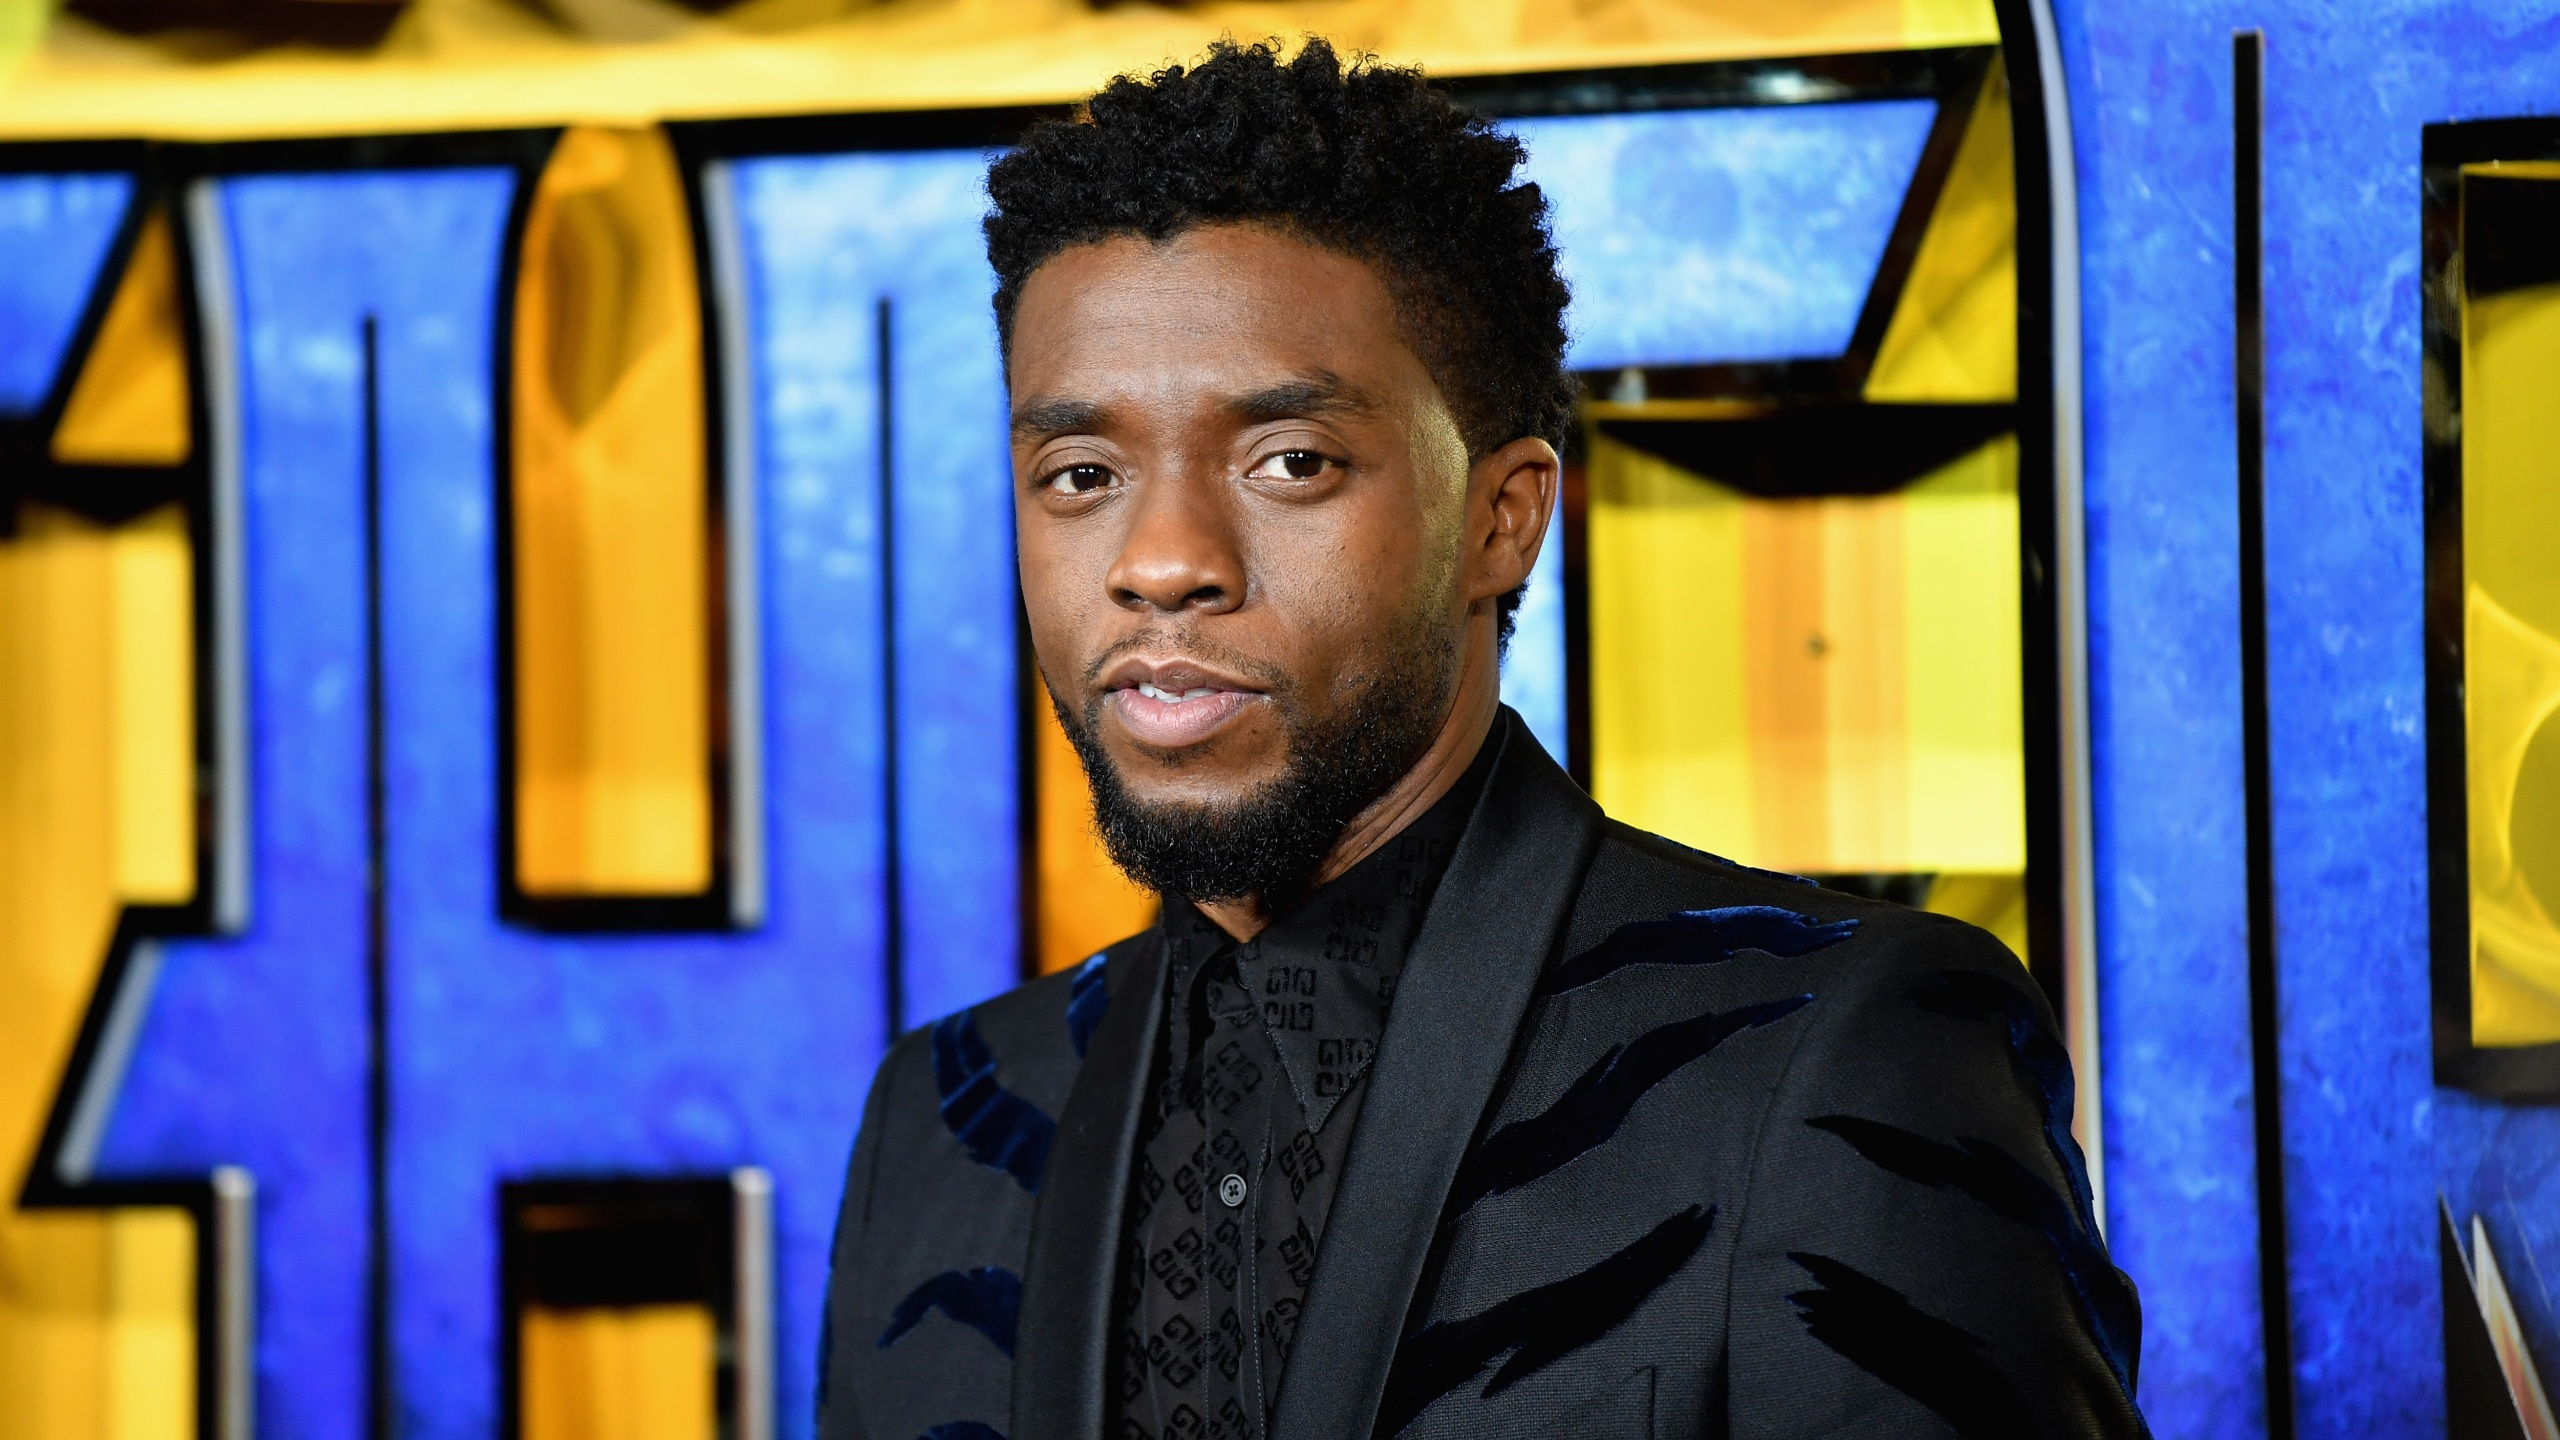 """Chadwick Boseman attends the European Premiere of Marvel Studios' """"Black Panther"""" at the Eventim Apollo, Hammersmith on February 8, 2018, in London, England. (Gareth Cattermole/Getty Images for Disney)"""